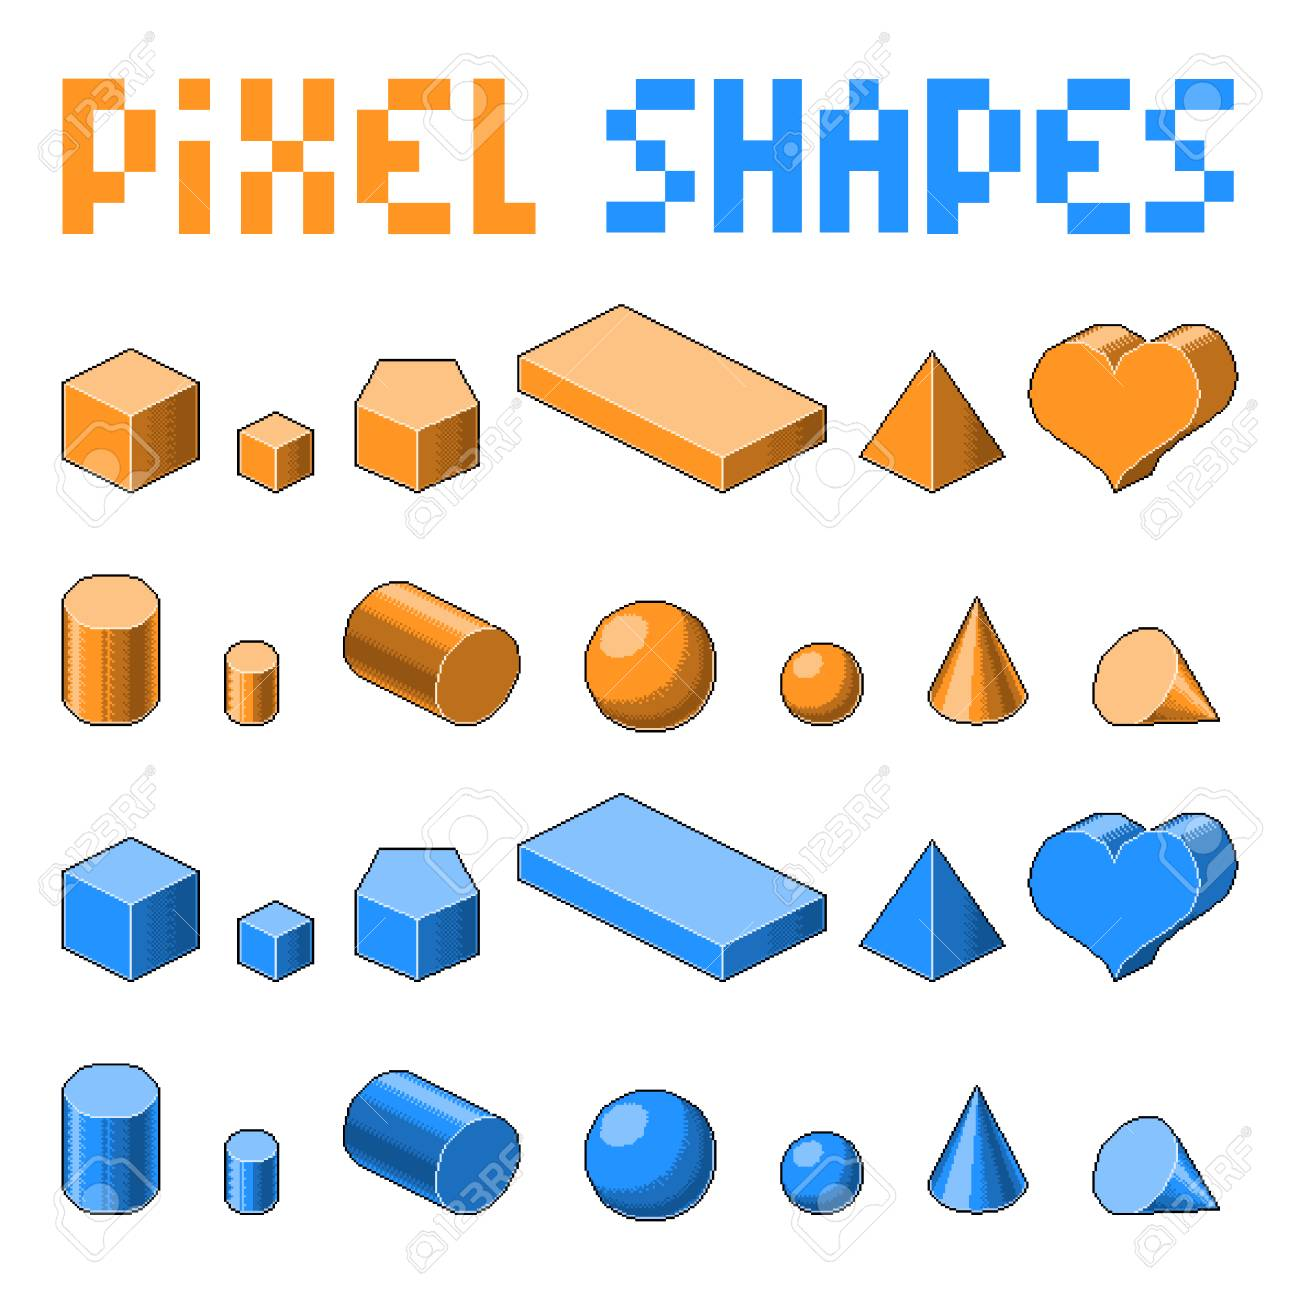 105817444-collection-of-pixel-art-3d-isometric-shapes-old-fashion-8-bit-game-orange-and-blue-colors Pixel Art 3d Game @koolgadgetz.com.info